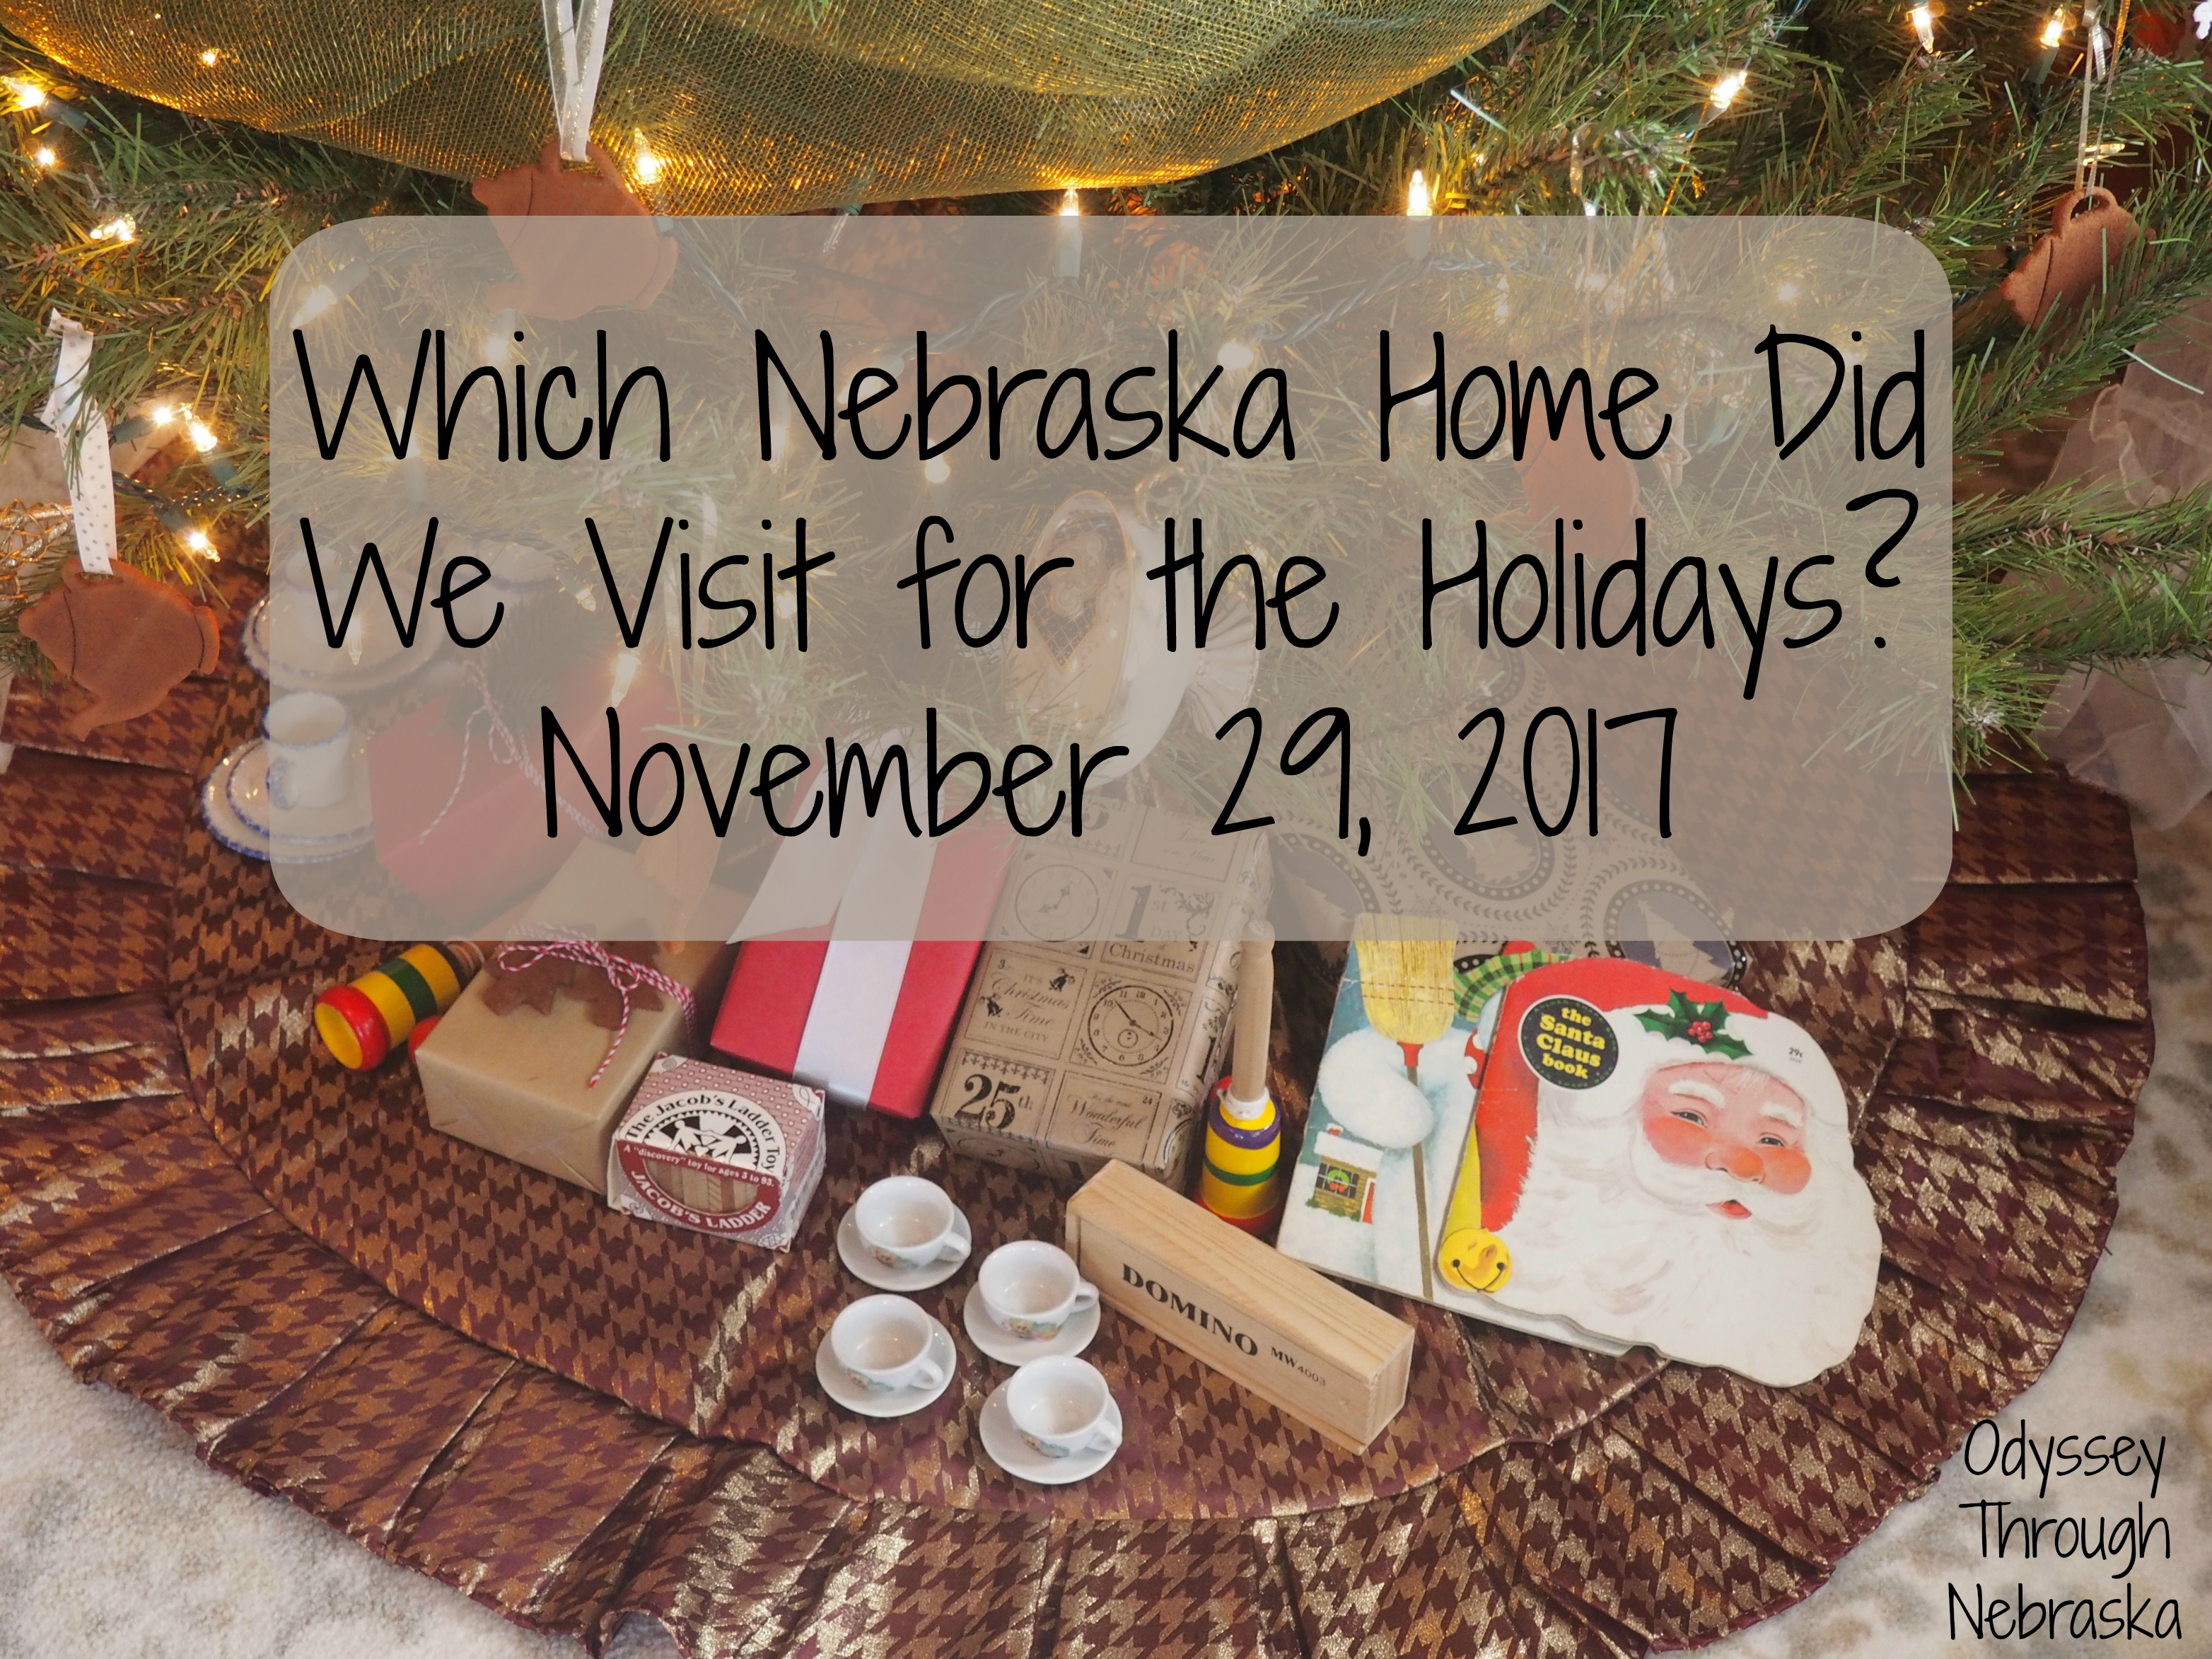 11-29-17 Nebraska home for holidays